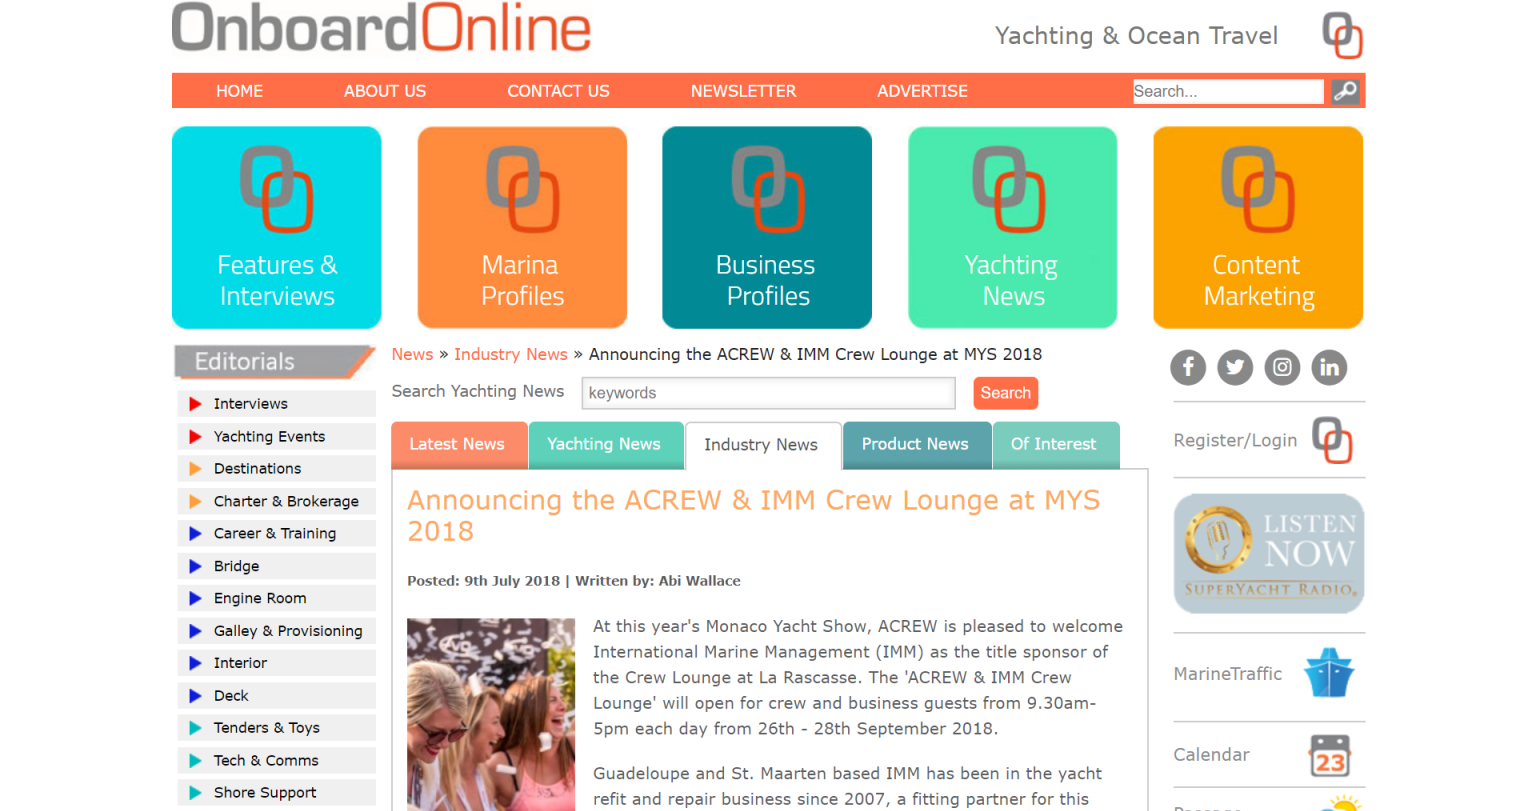 Onboard Online – Announcing the ACREW & IMM Crew Lounge at MYS 2018